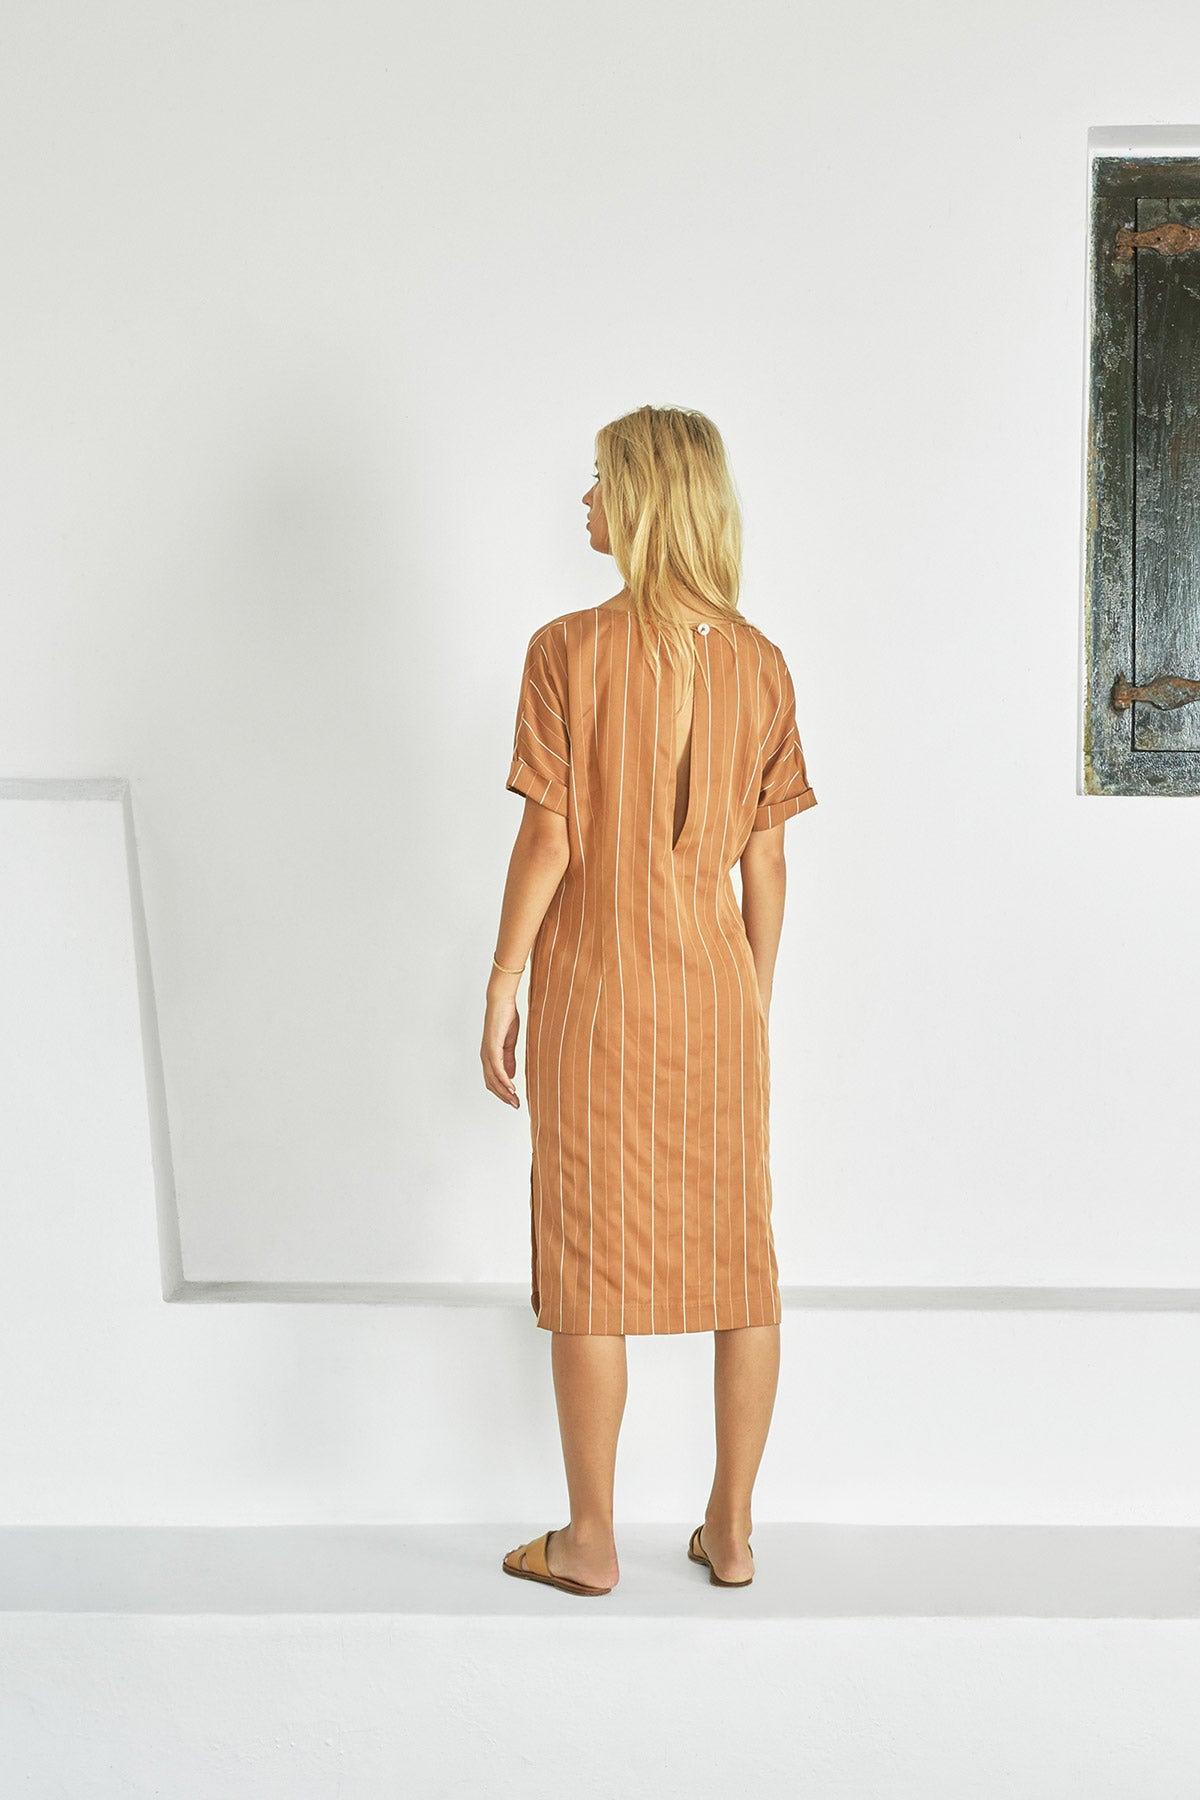 THE MABEL DRESS